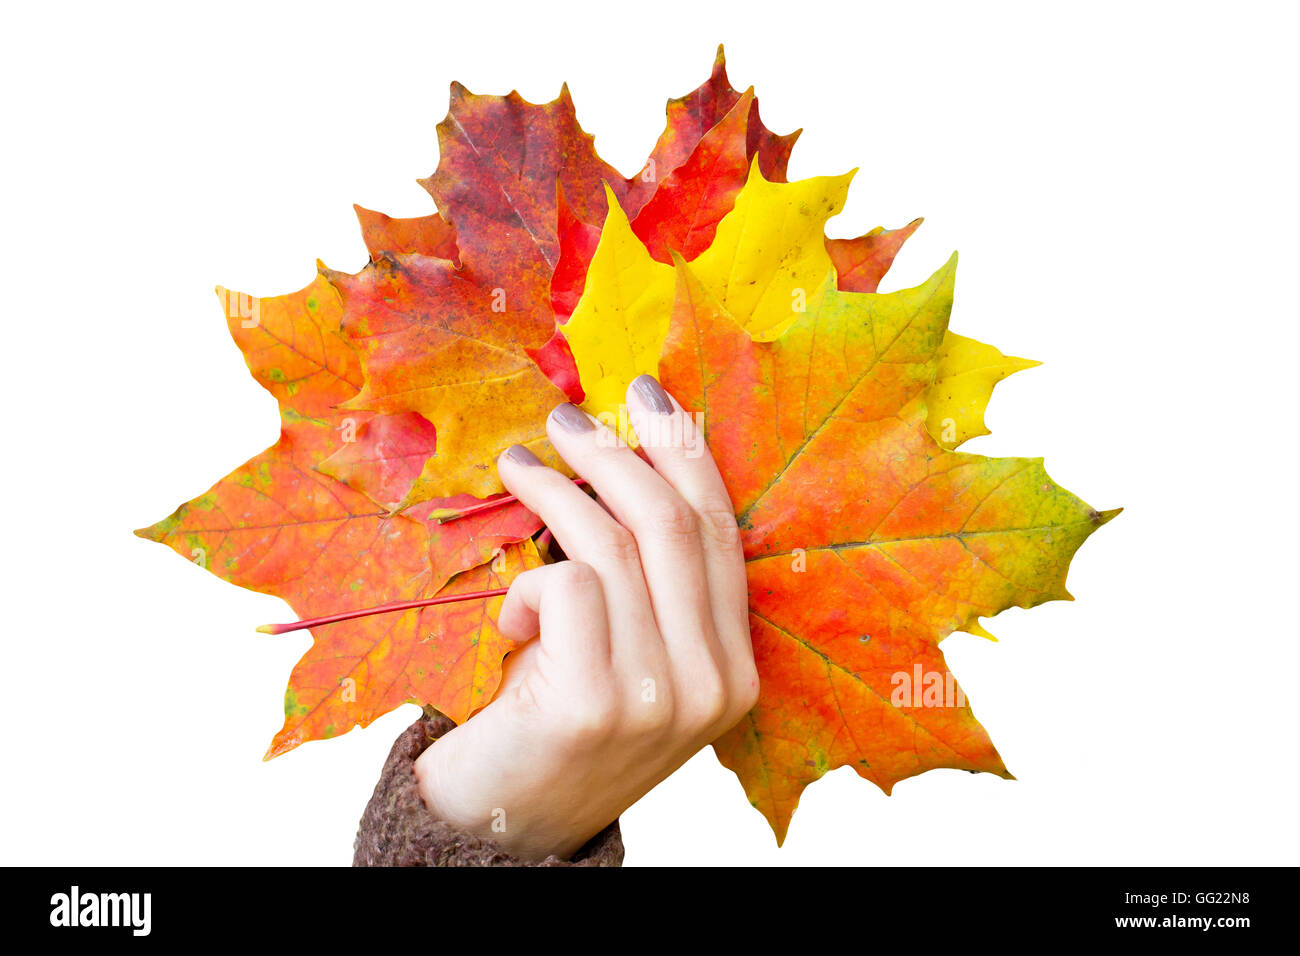 Colorful autumn leaves in the hand - Stock Image